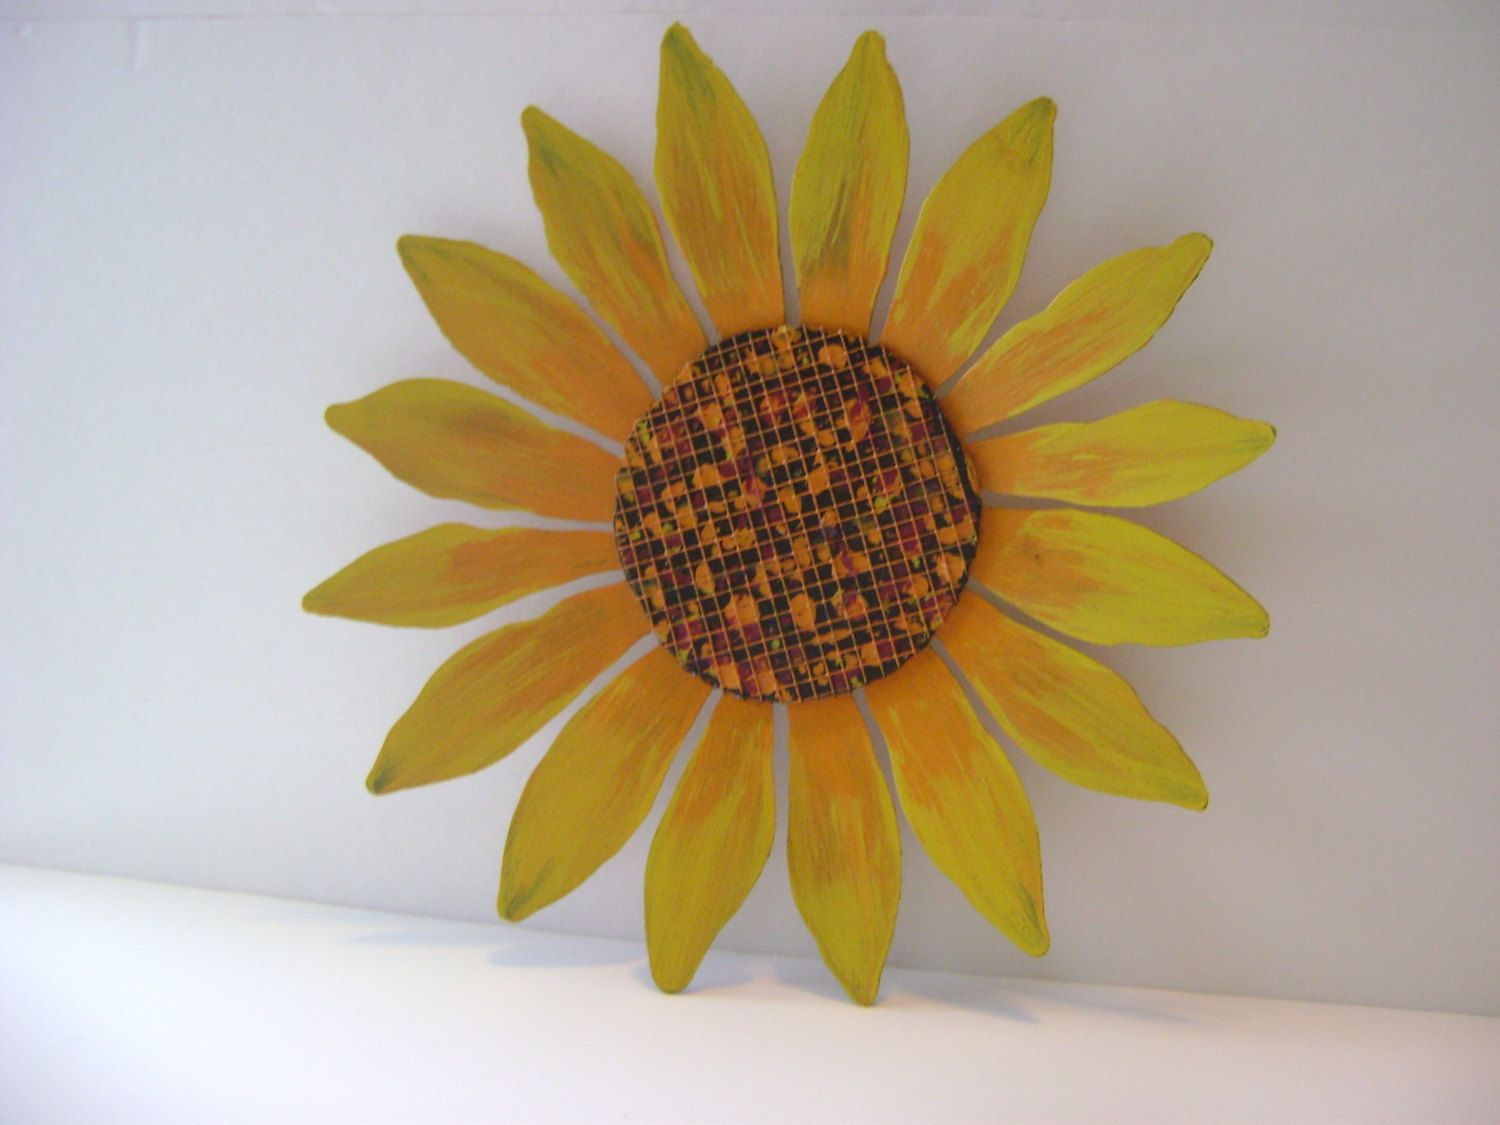 Yellow / Orange Sunflower Wall Art, Sculptured Metal Garden Art, Shabby  Chic, Whimsical